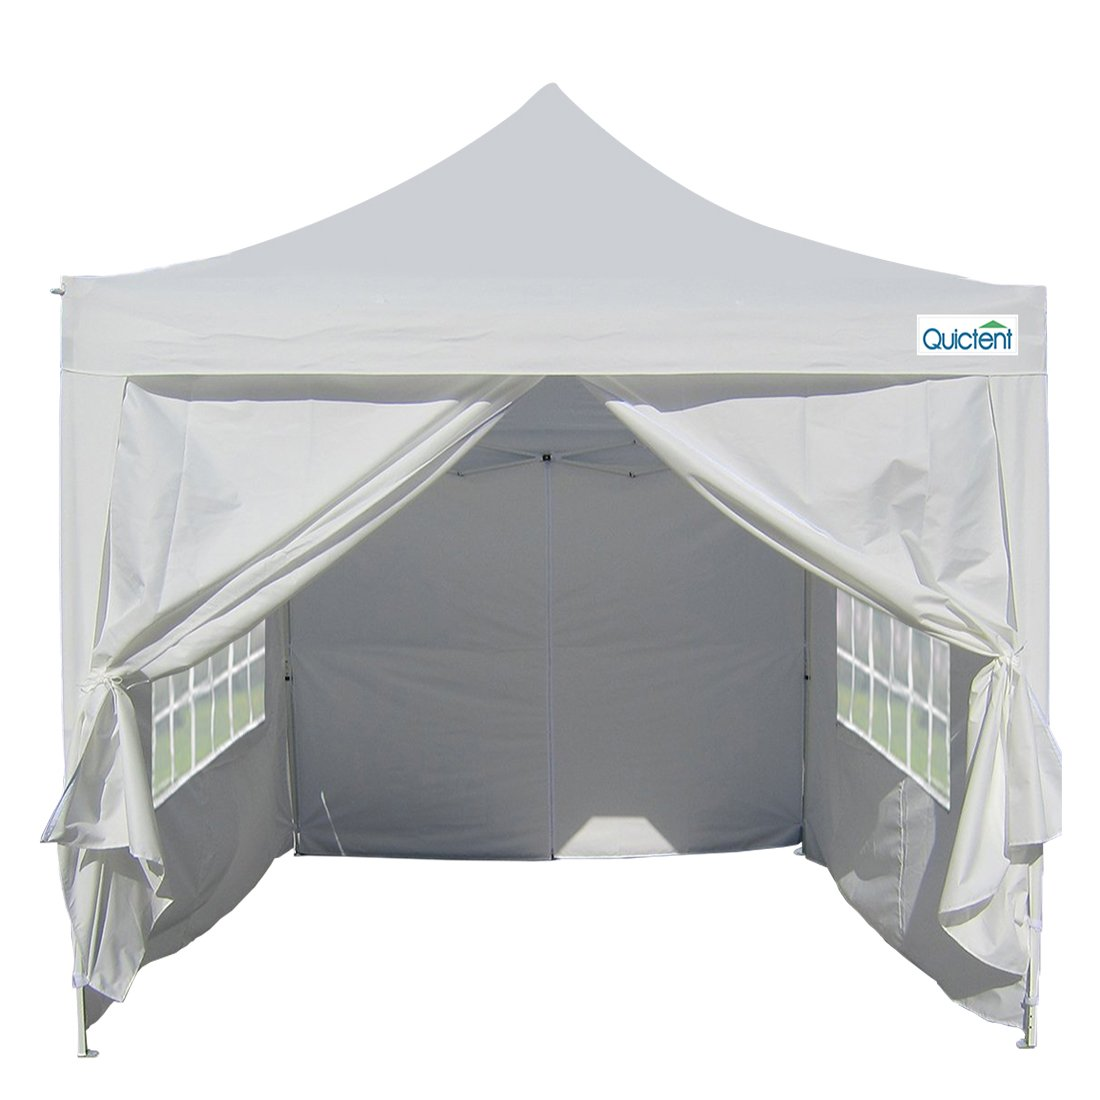 Quictent Silvox Waterproof 8x8' EZ Pop Up Canopy Commercial Gazebo Party Tent White Portable Pyramid-roofed Style Removable Sides With Roller Bag